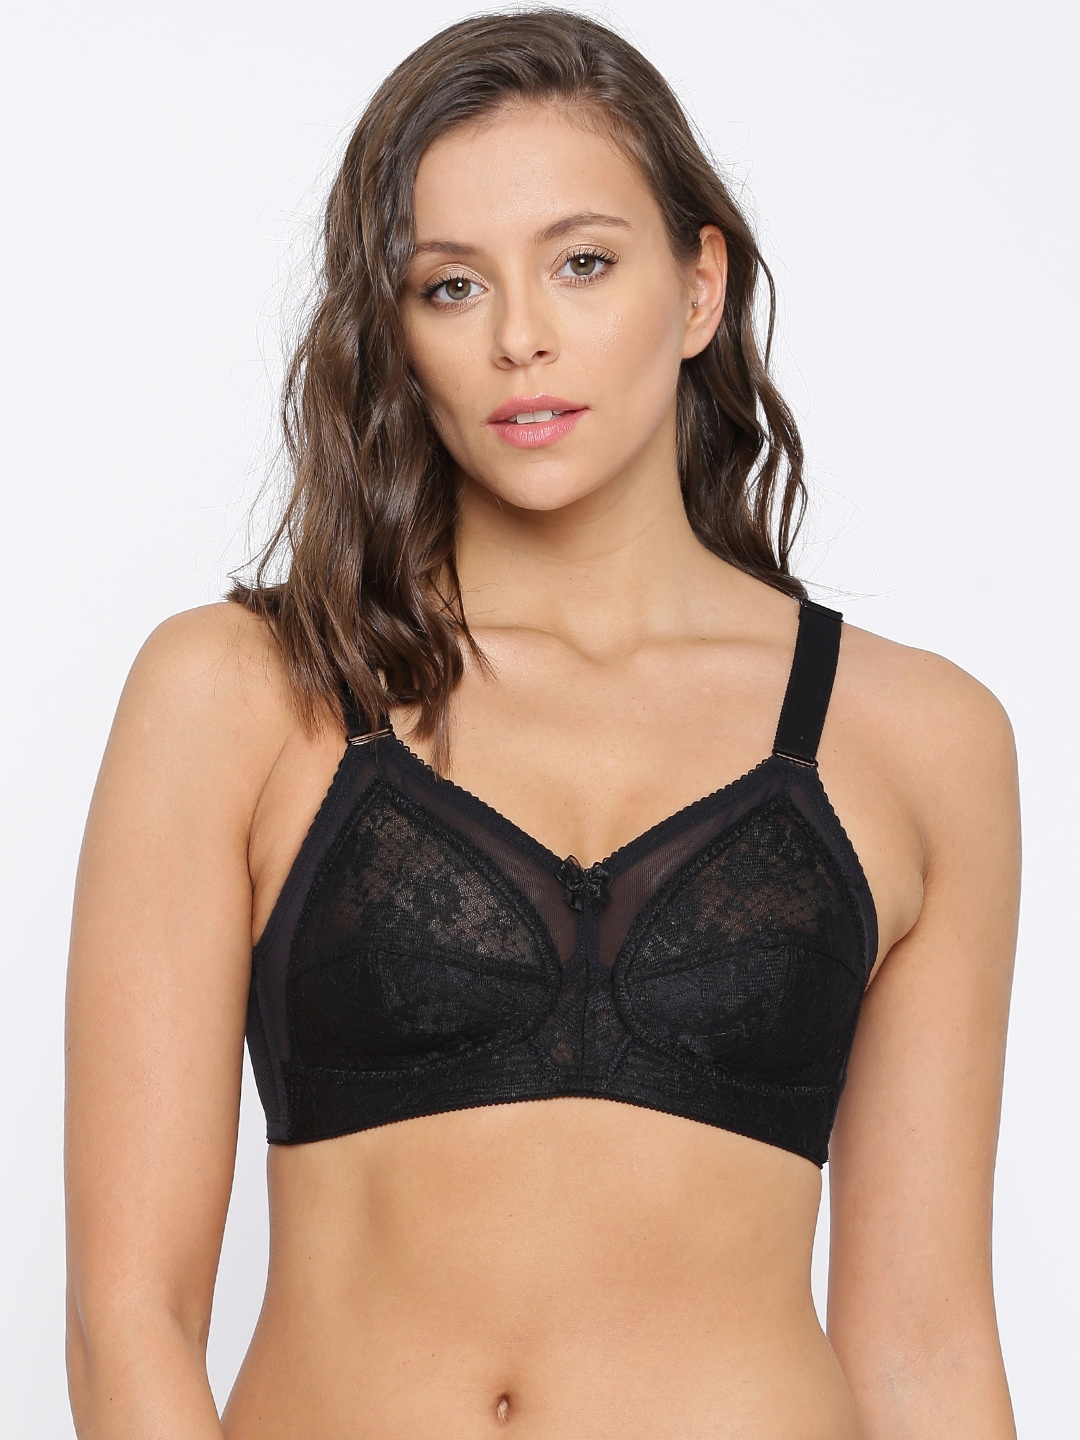 b57a3e9521a Enamor Bra - Buy Enamor Bras for Women Online